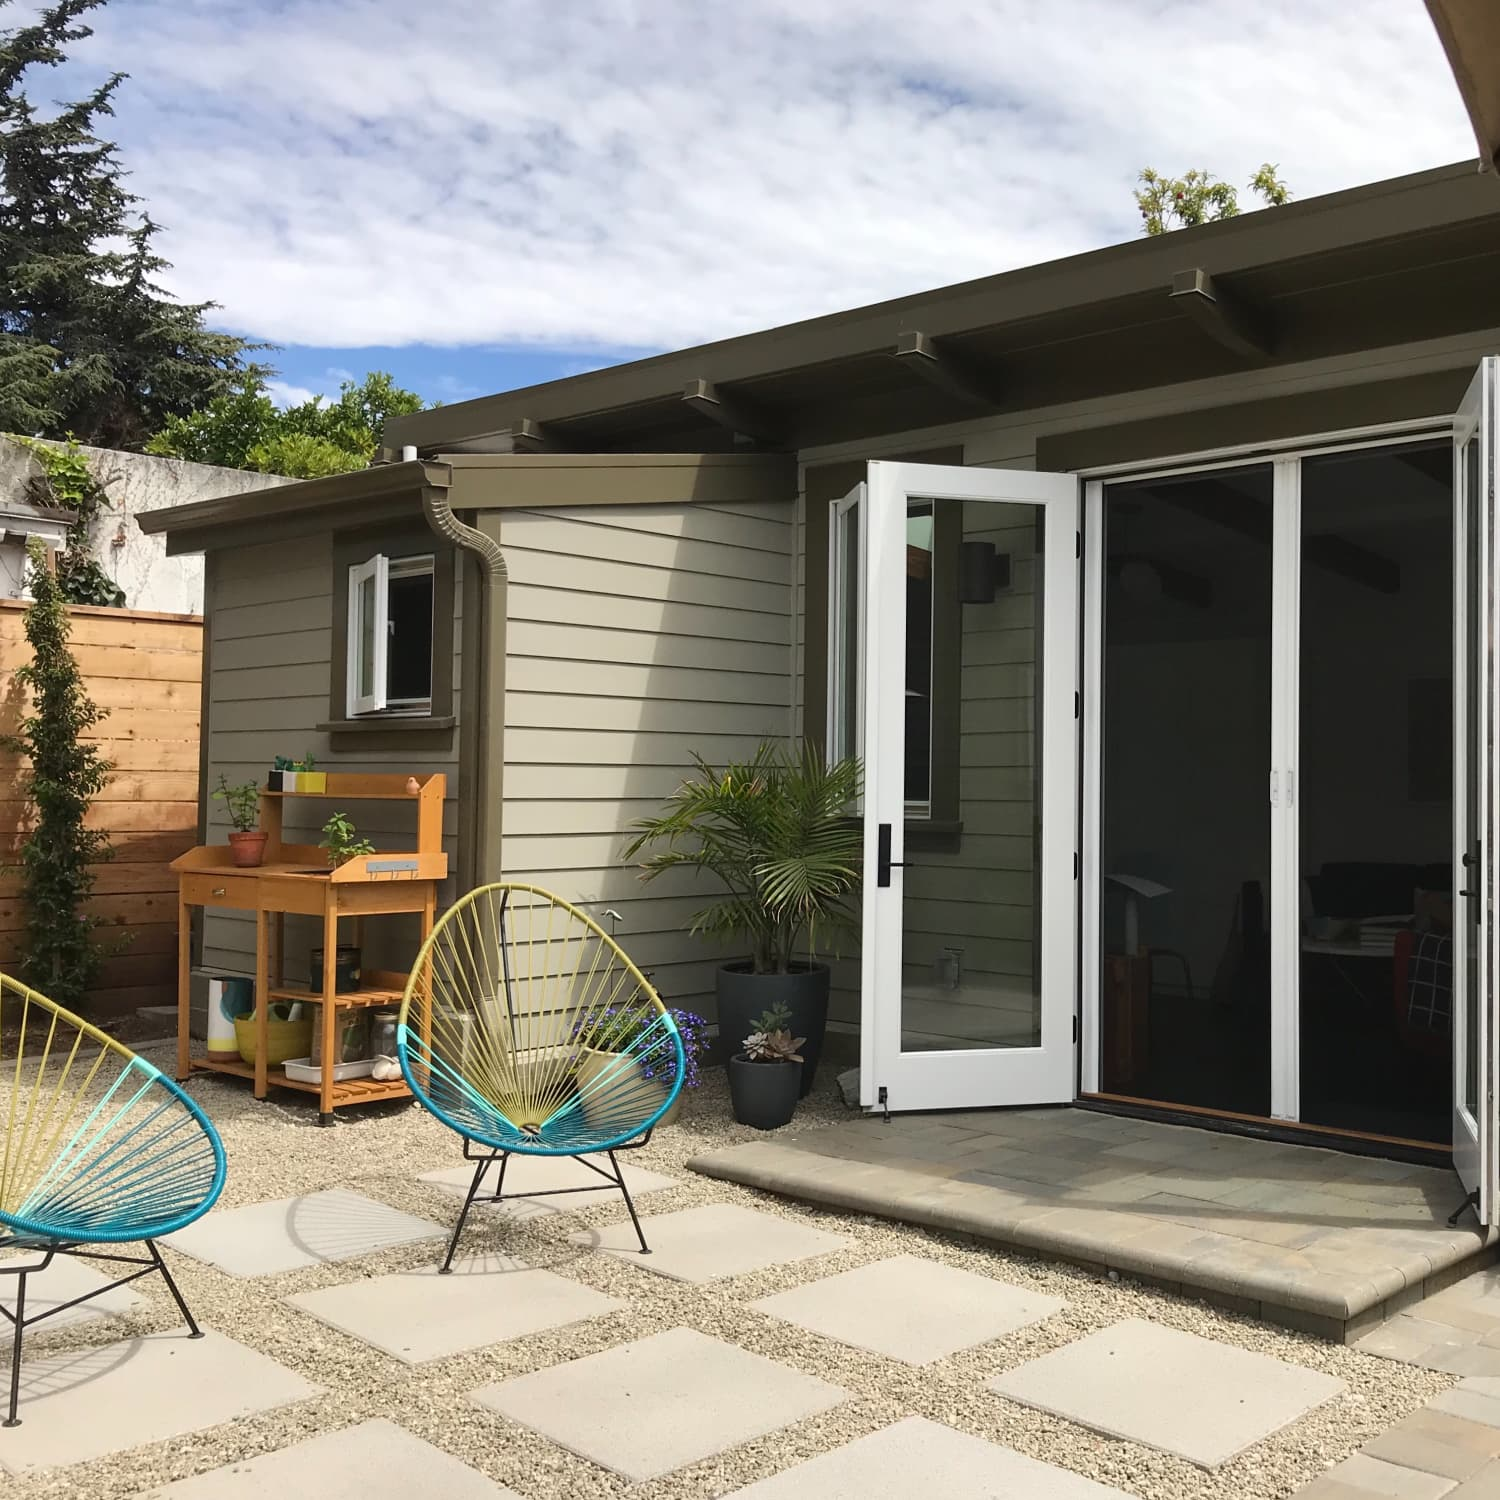 8 Tiny Houses You Can Buy For Under $30,000 | Apartment Therapy